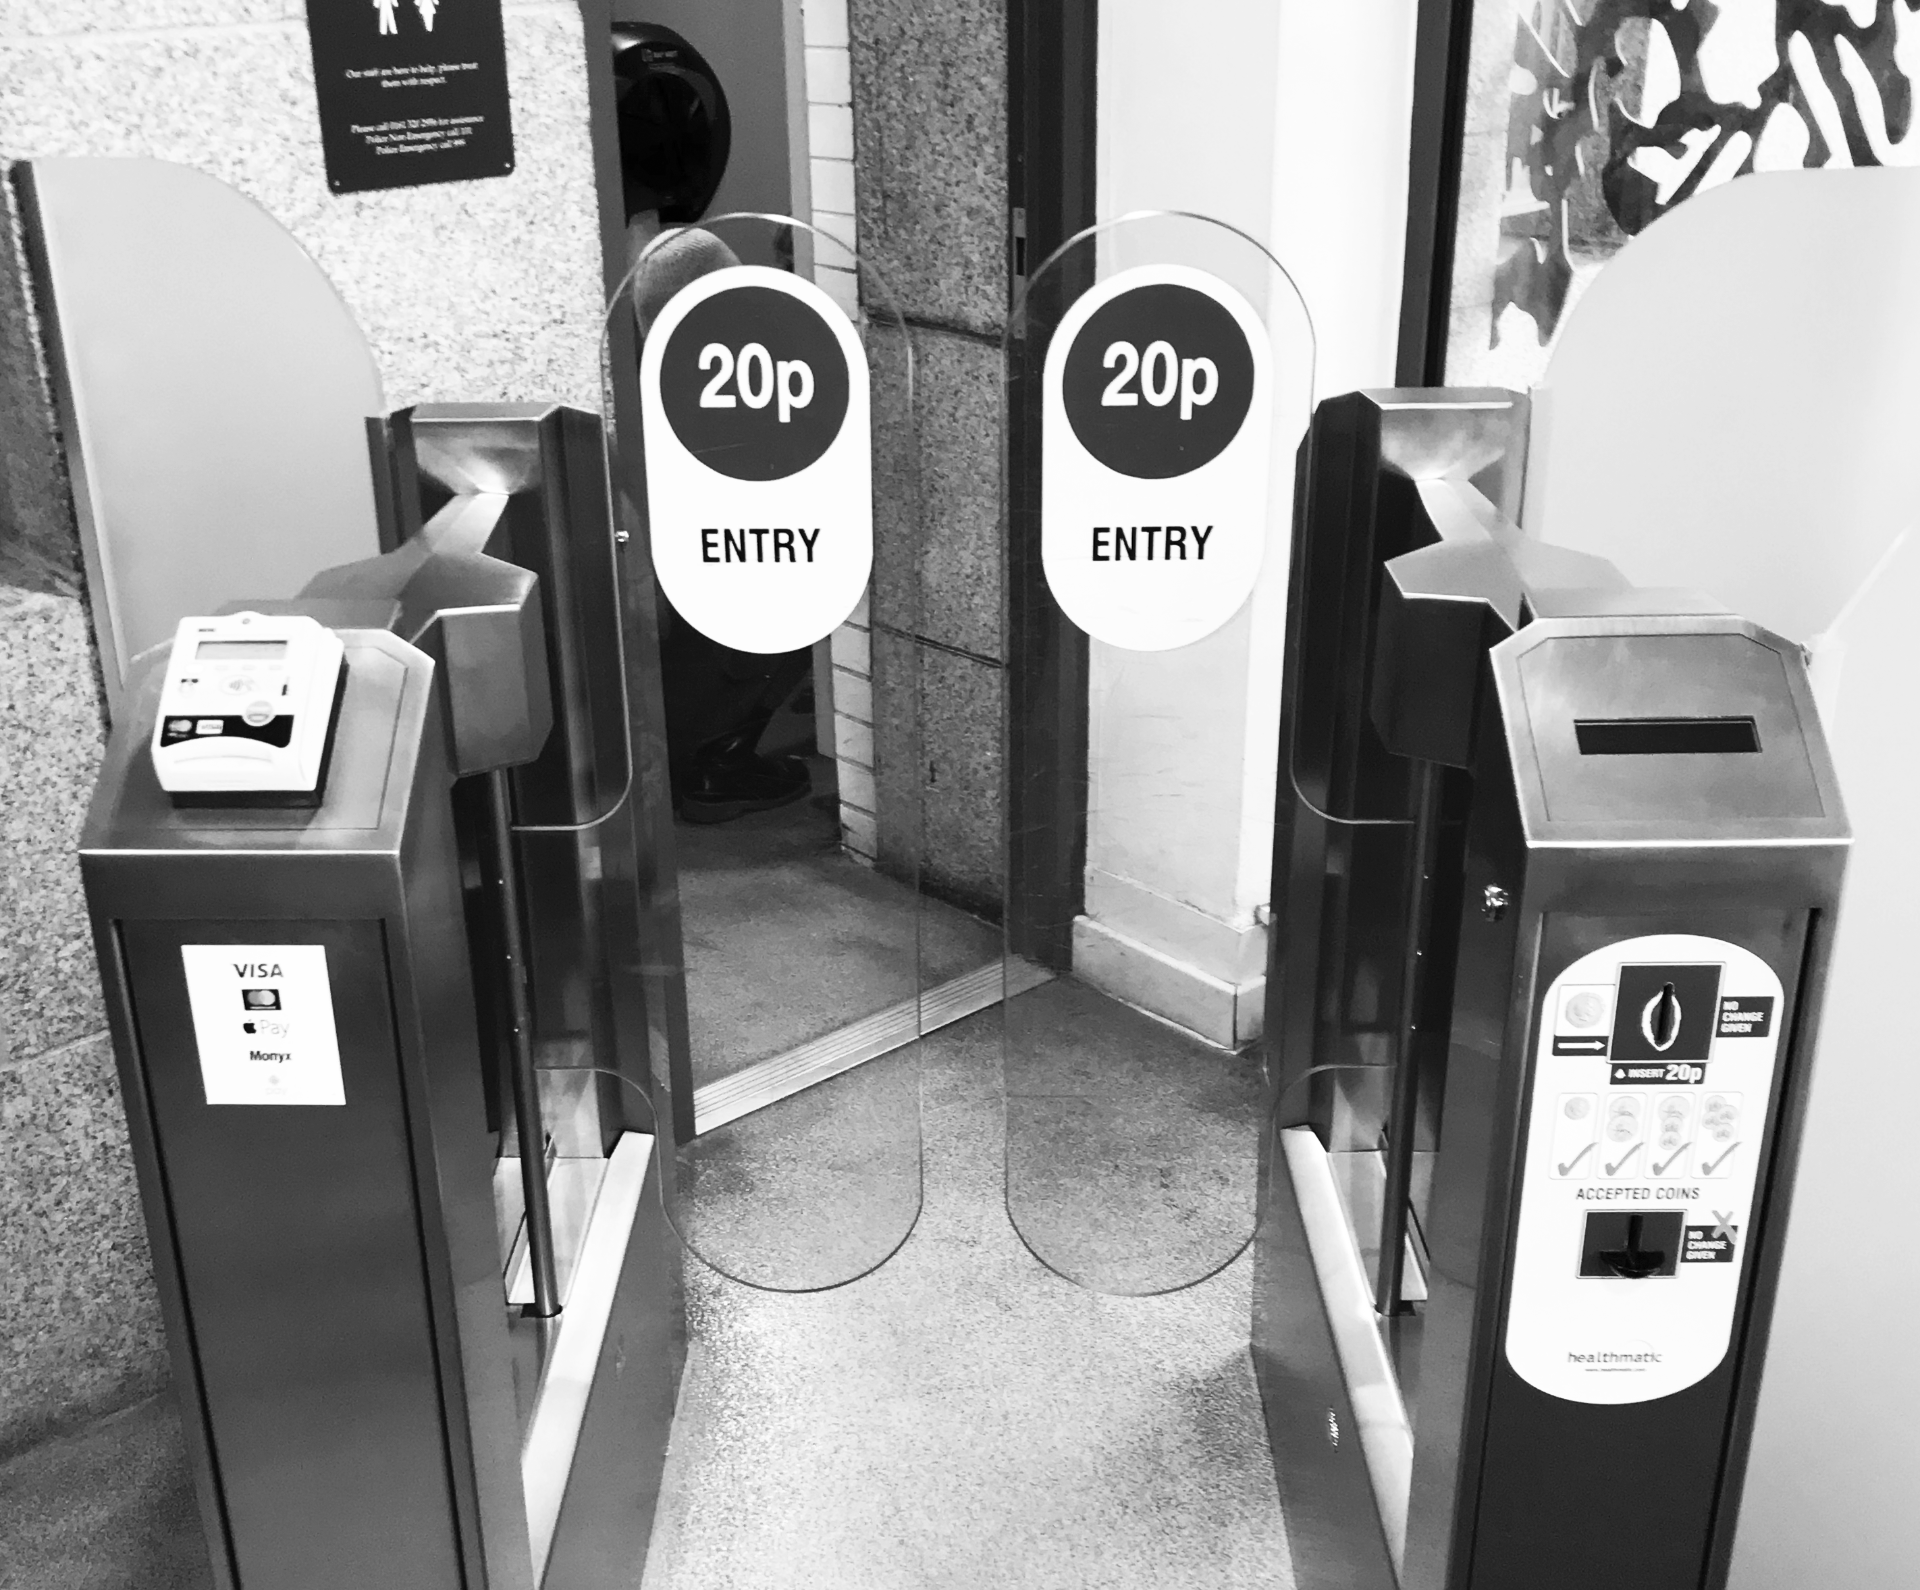 Paddle gate entry system, card reader on left-hand side, coin payment on right-hand side.